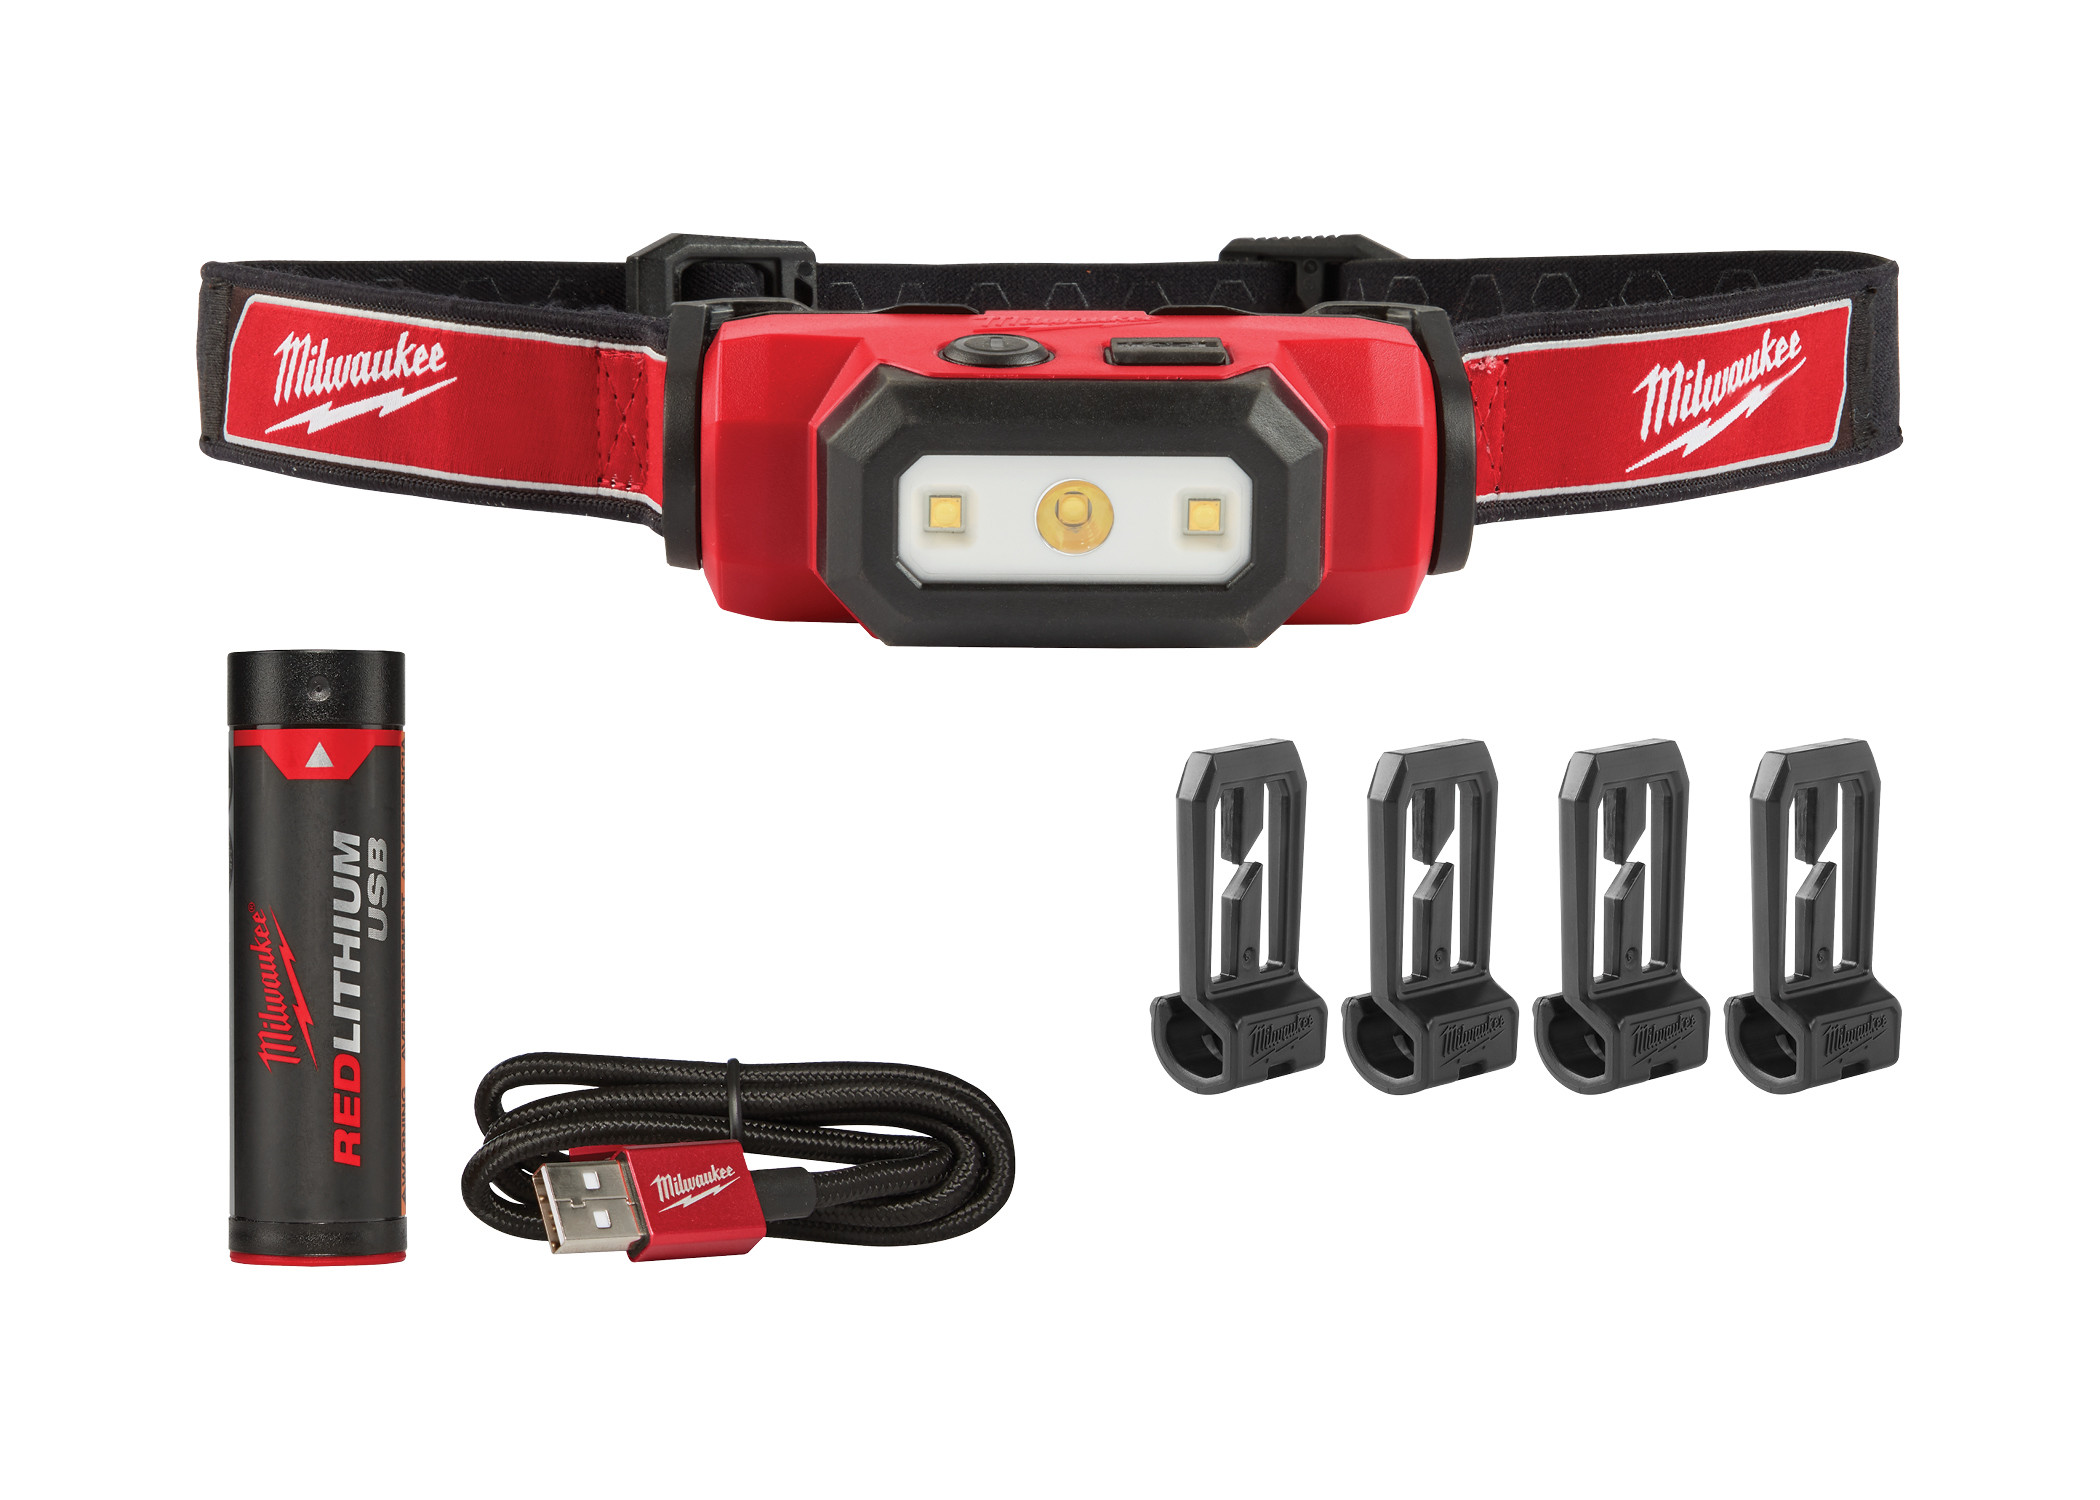 Milwaukee® 2111-21 Hard Hat USB Rechargeable Headlamp, LED Bulb, Plastic Housing, 475 Lumens Lumens